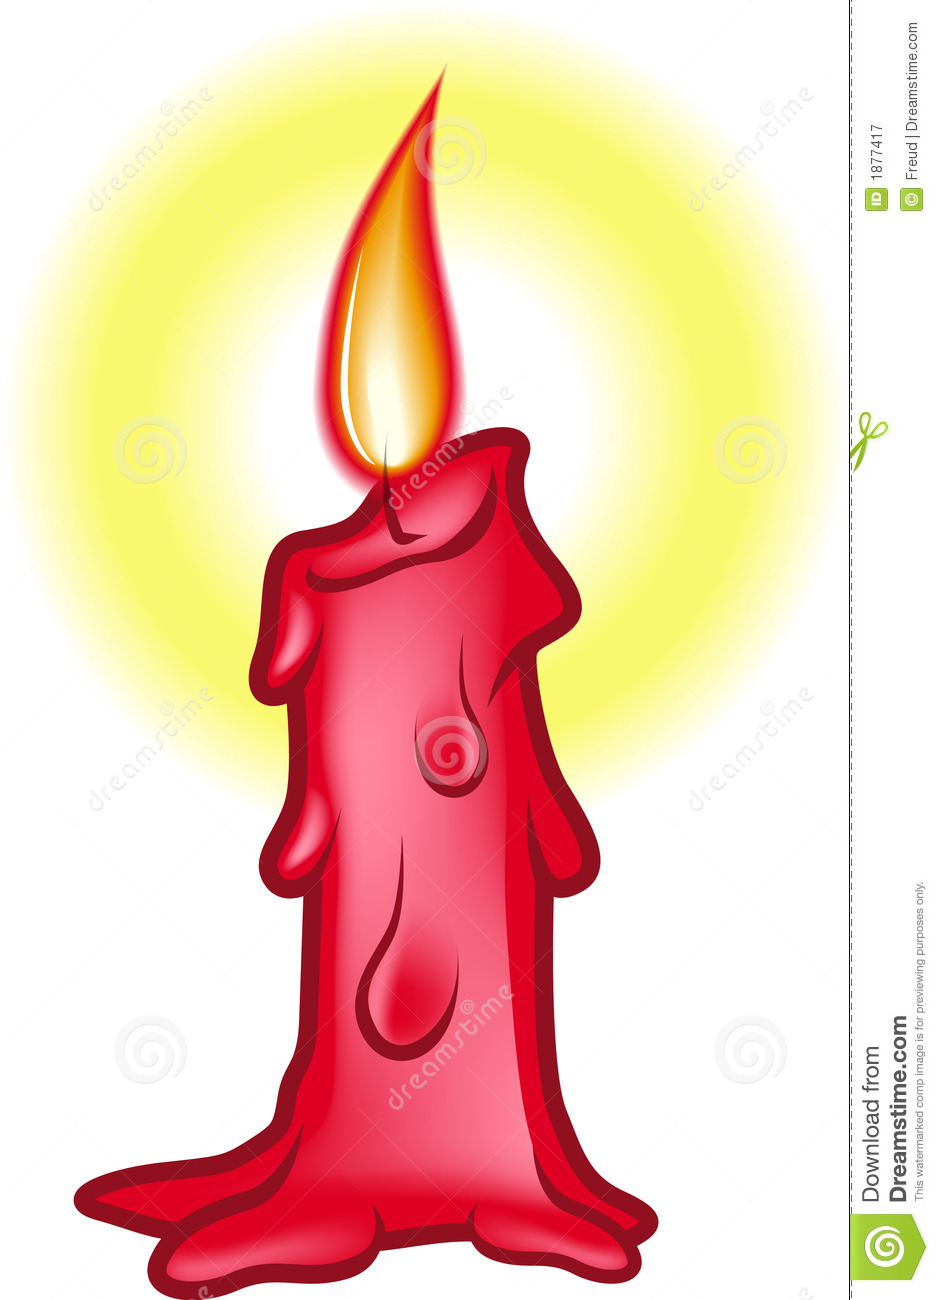 Wax candles clipart - Clipground - 169.1KB